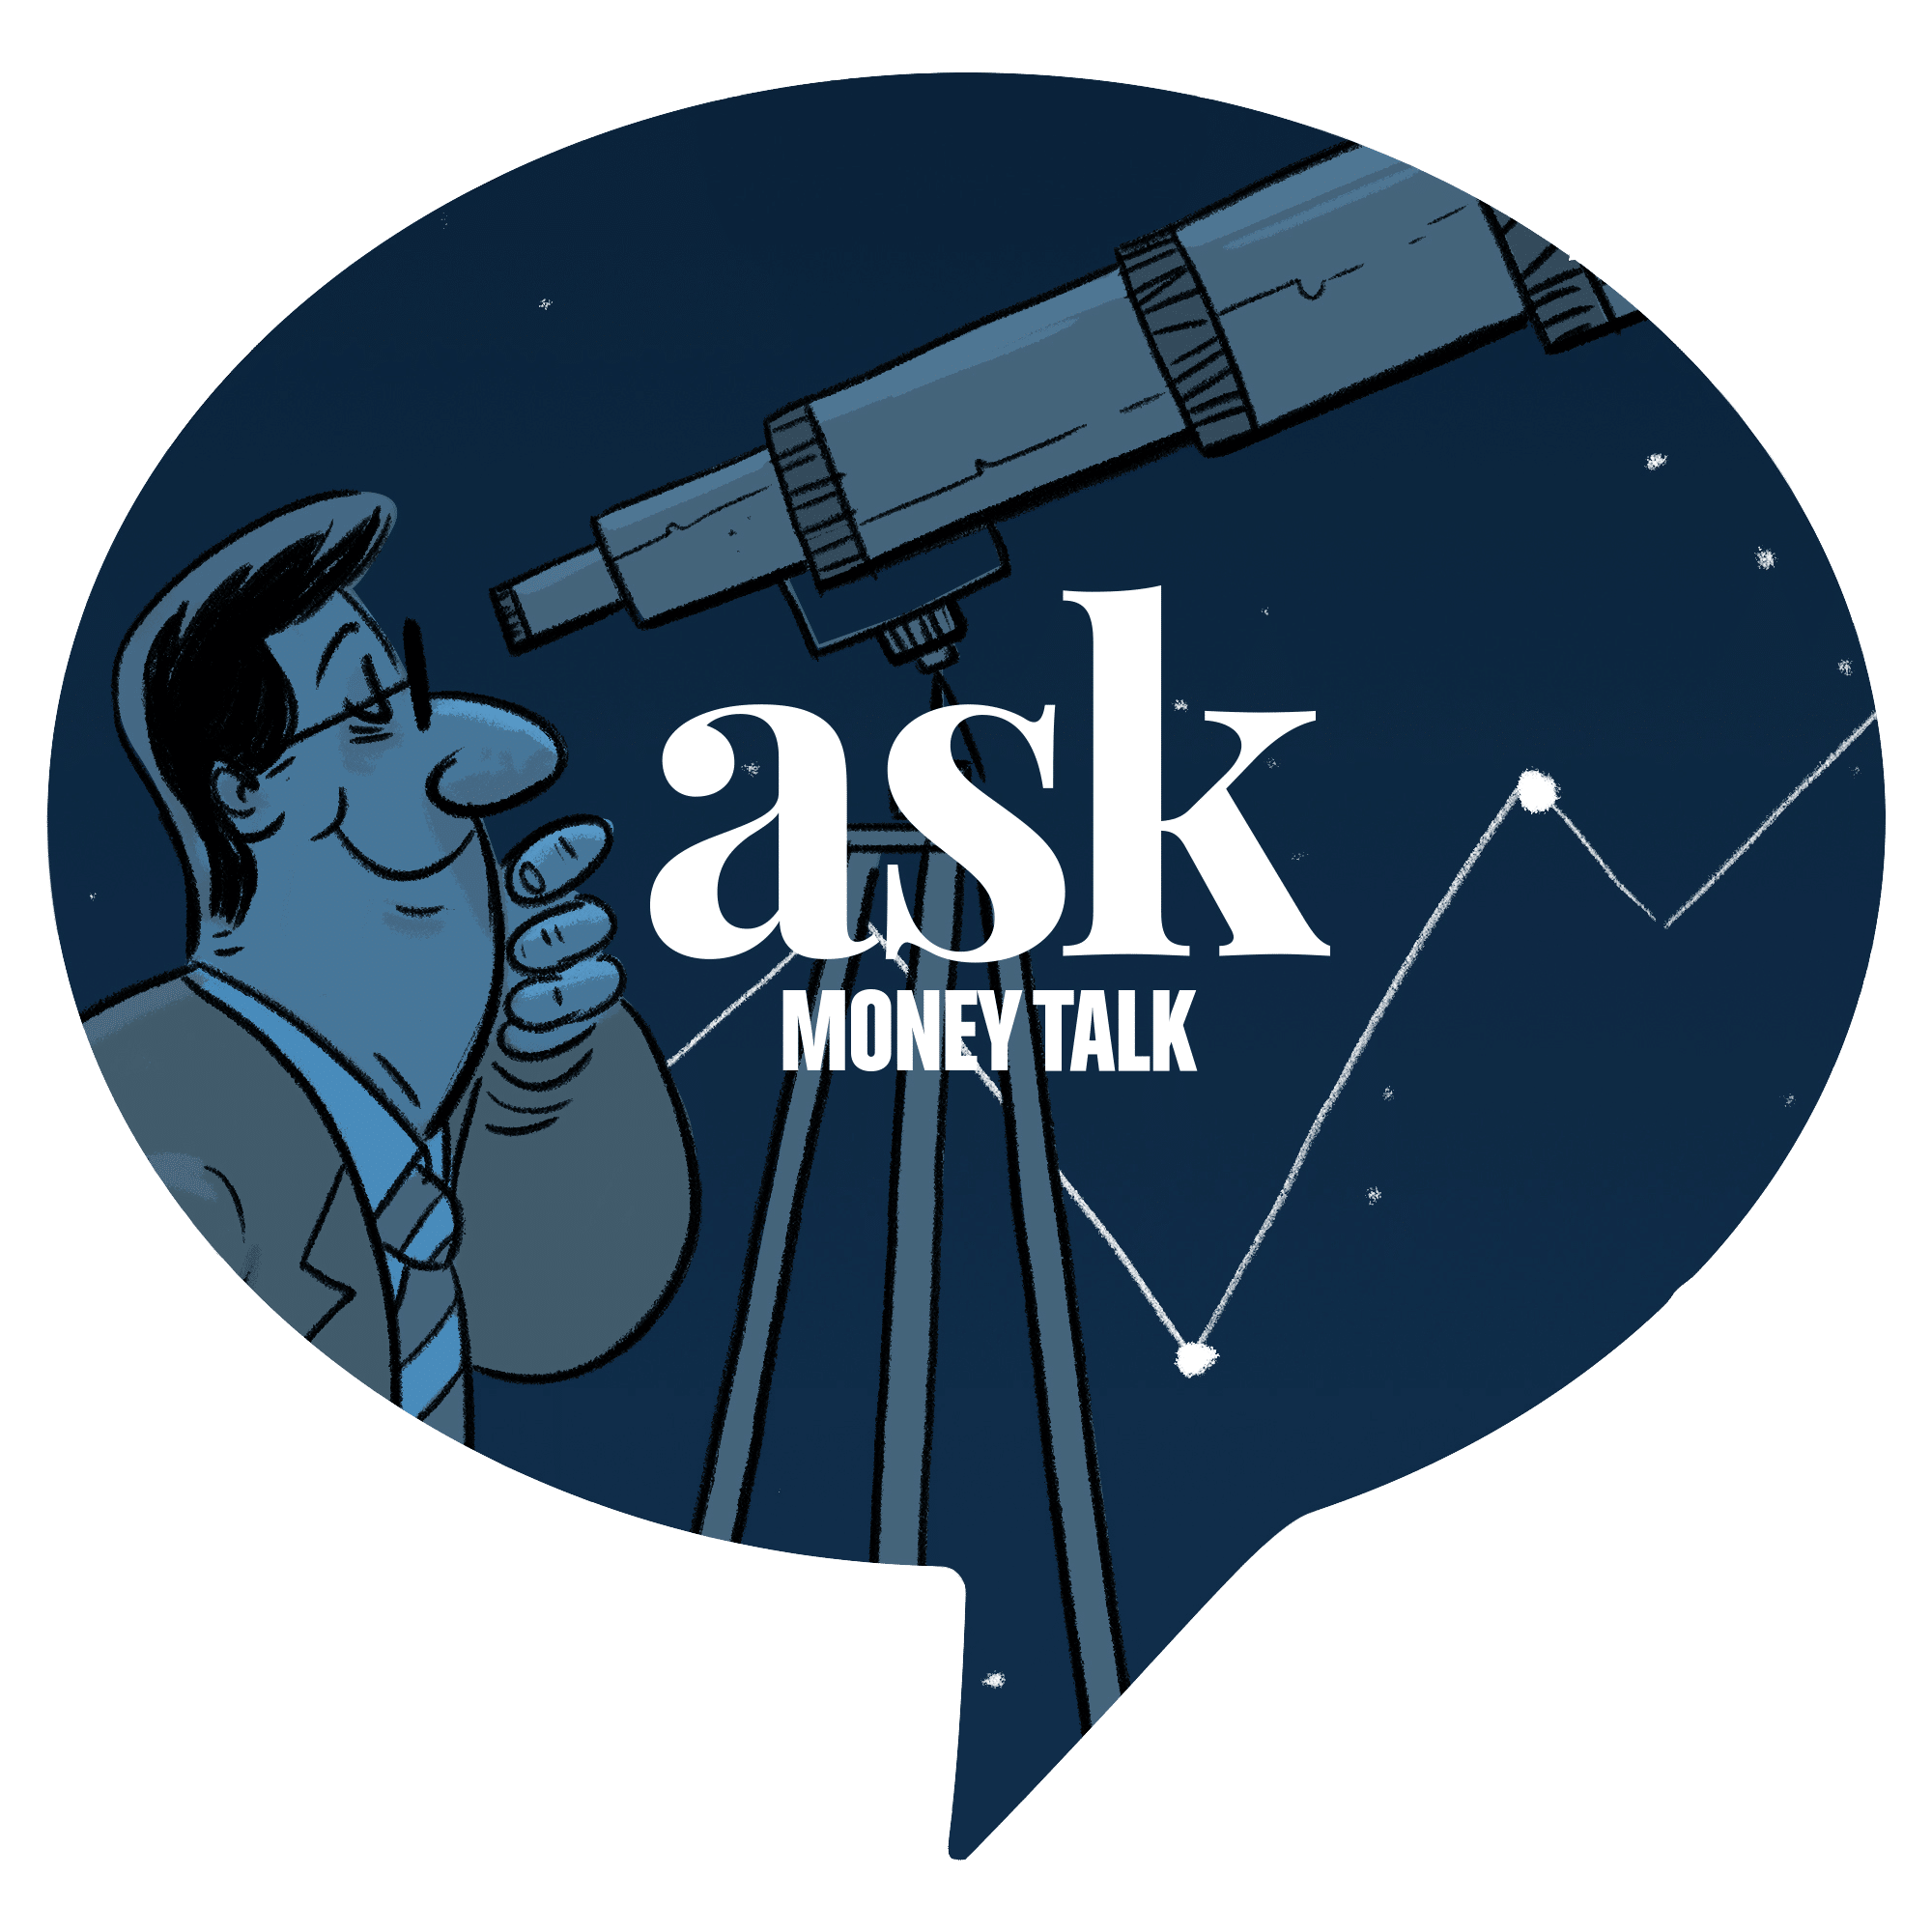 illustration of man looking into space with a telescope with askmoneytalk logo